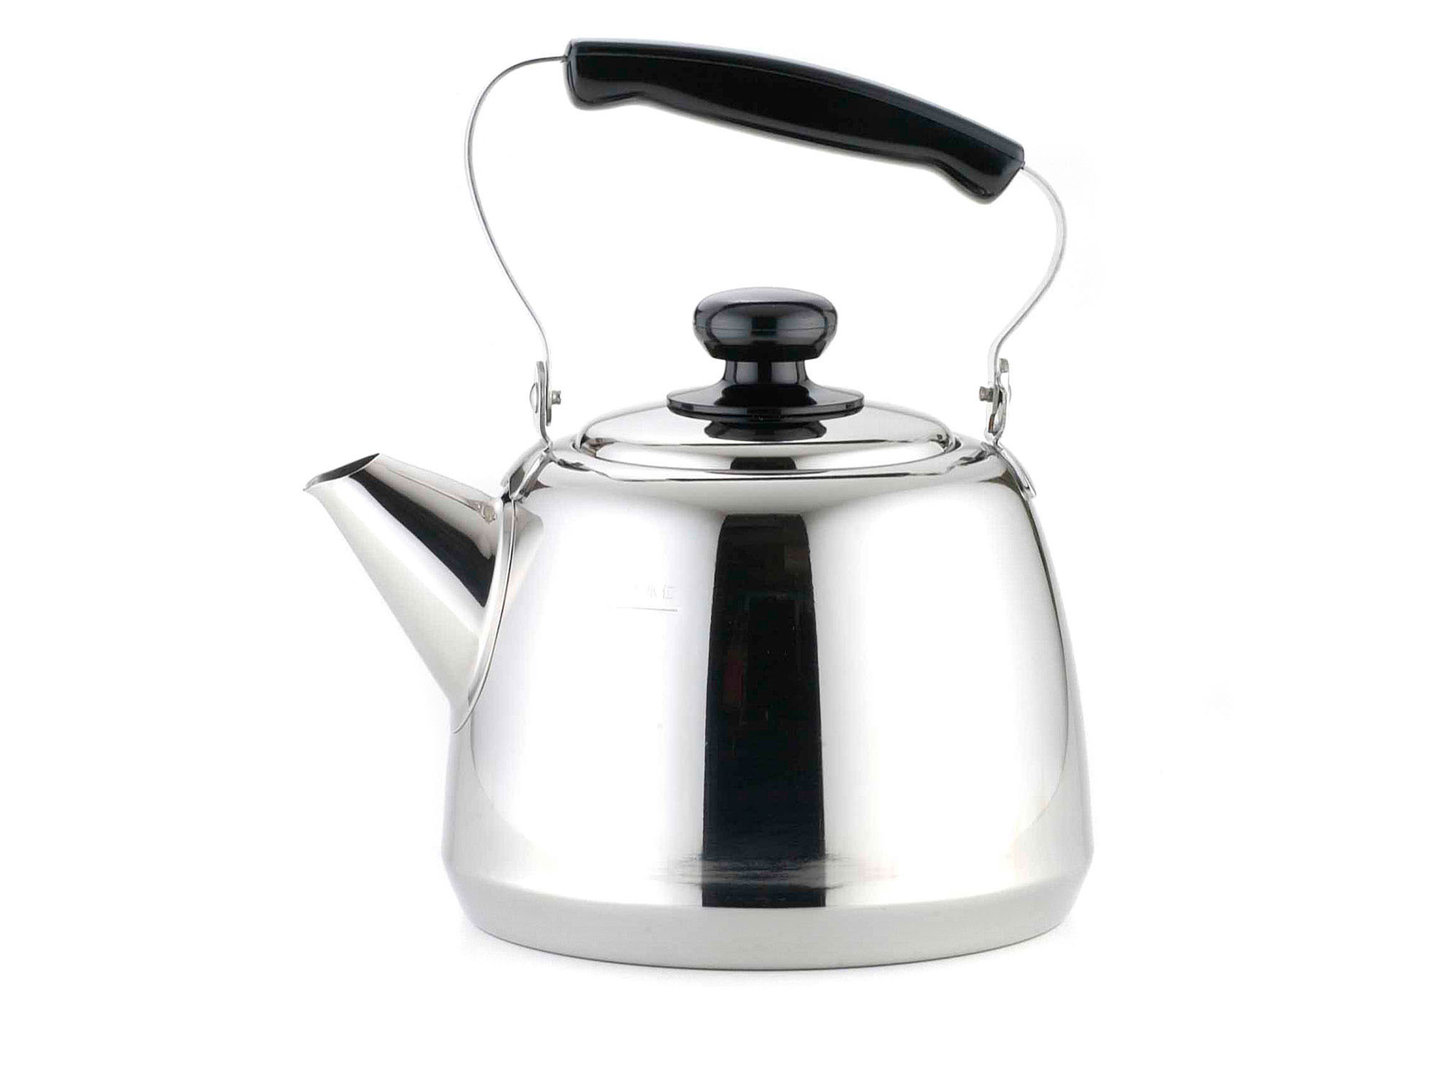 YOSHIKAWA water kettle VARIETY stainless steel